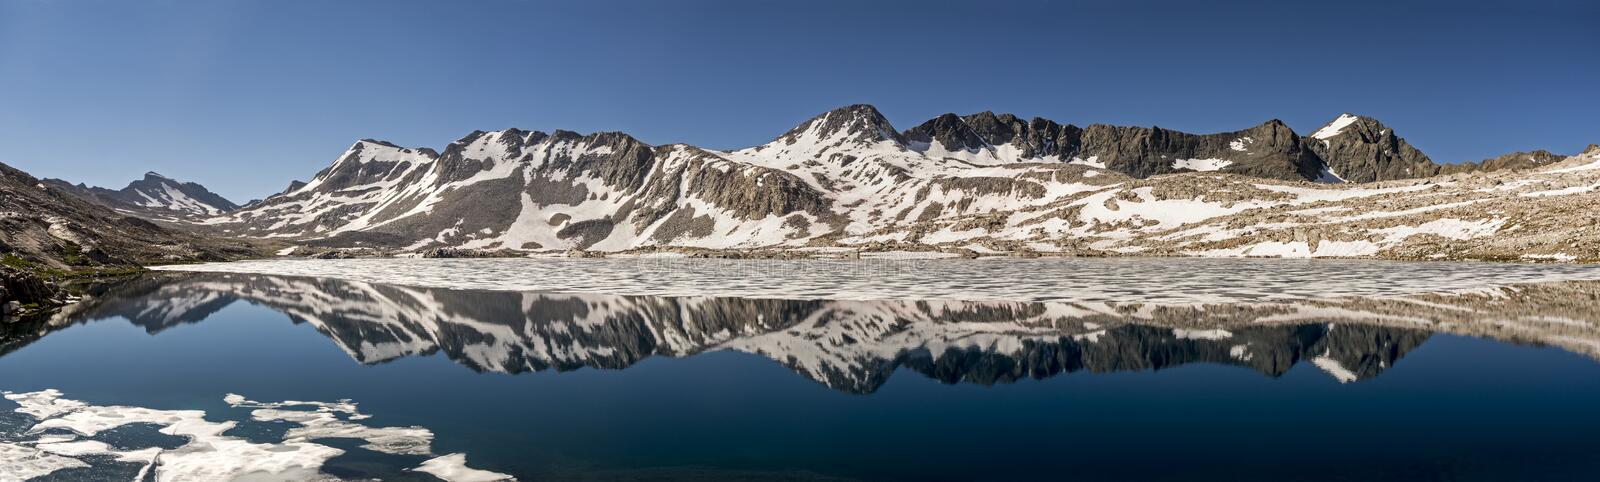 Wanda Lake Panorama Reflection, parc national des Rois Canyon, la Californie photo libre de droits